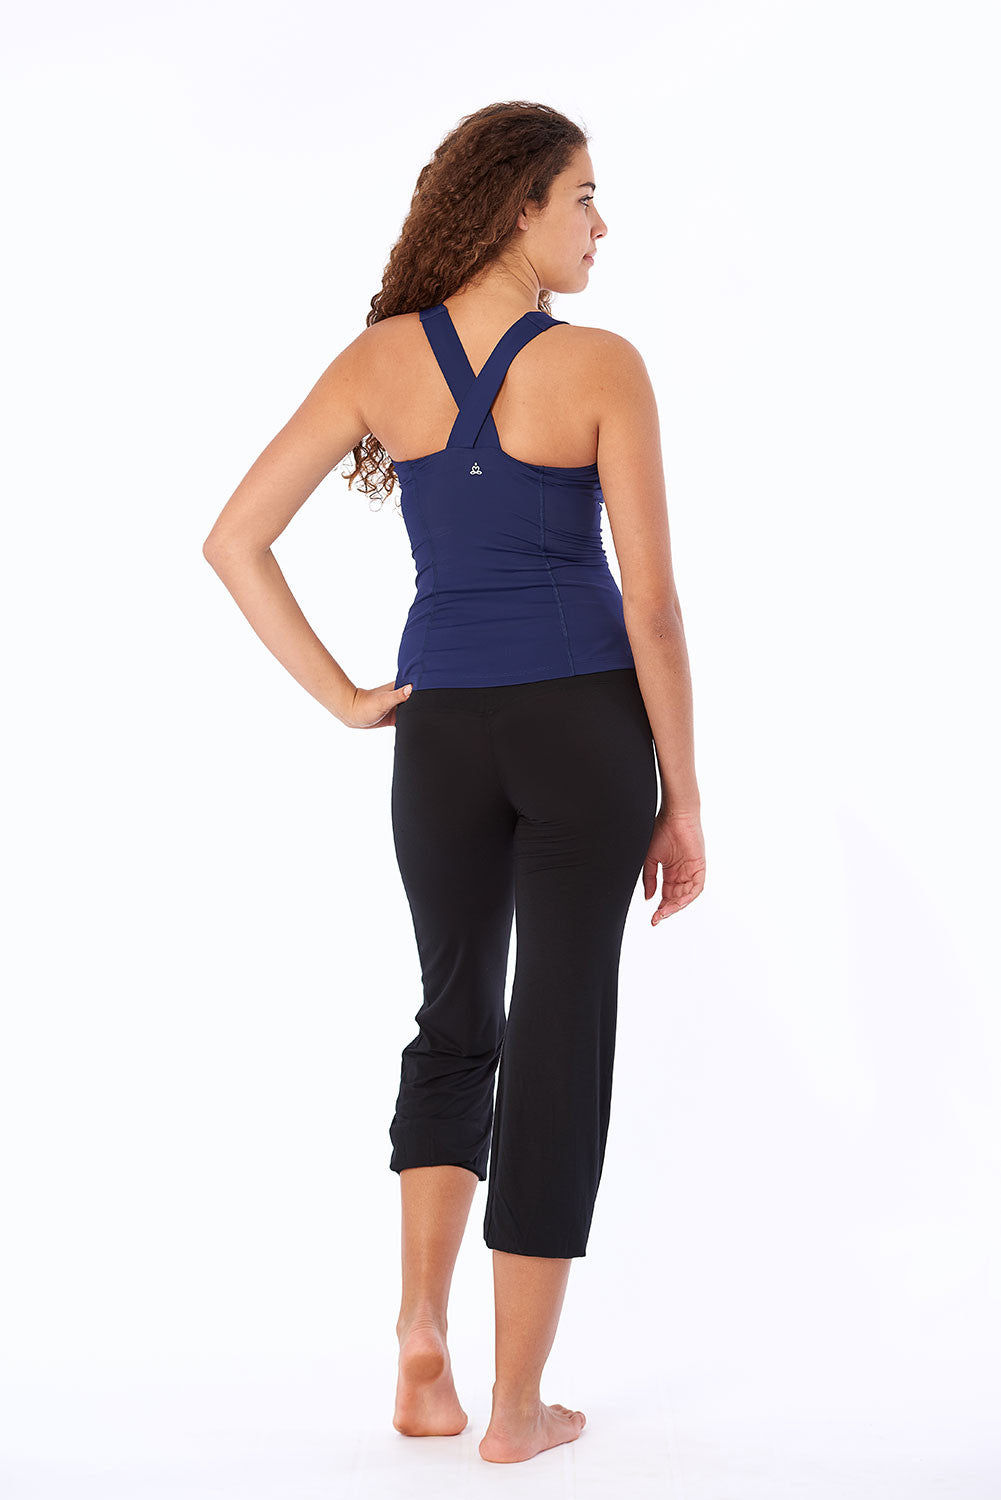 Activewear yoga top sports back